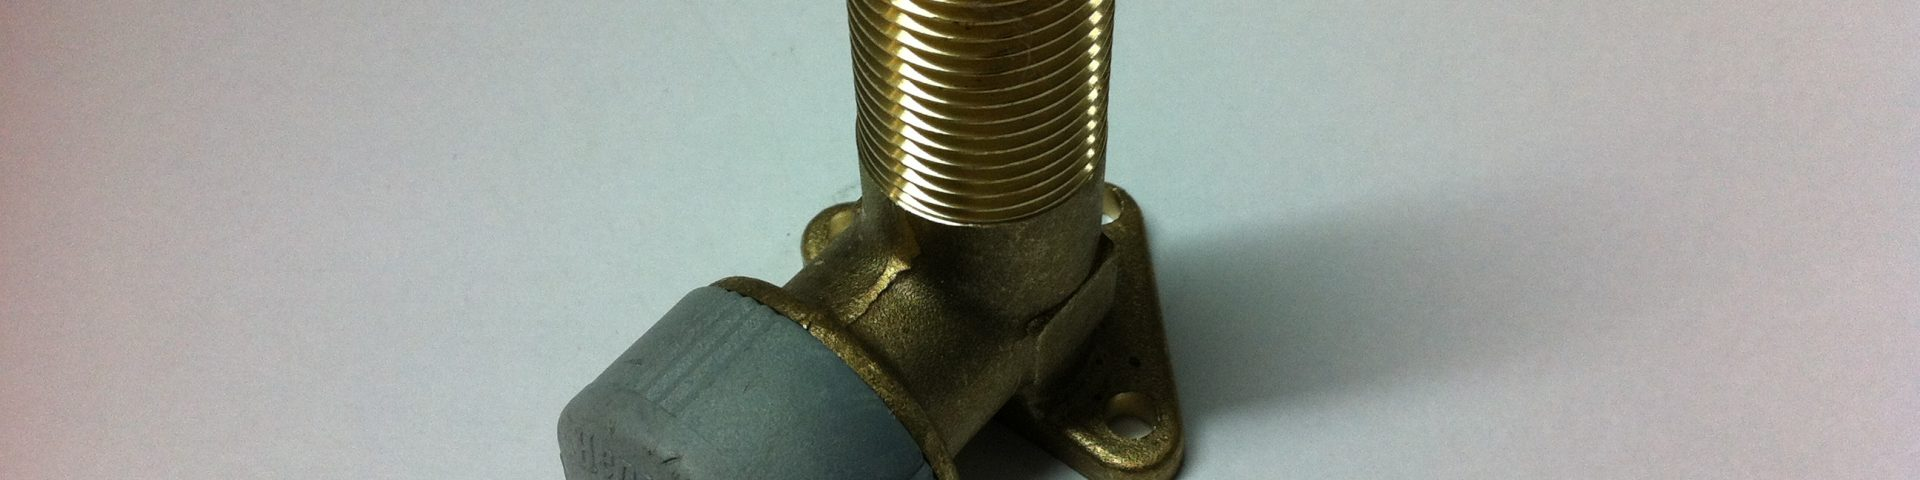 Hep2O WALL ELBOW, EXTENDER M.I. BRASS